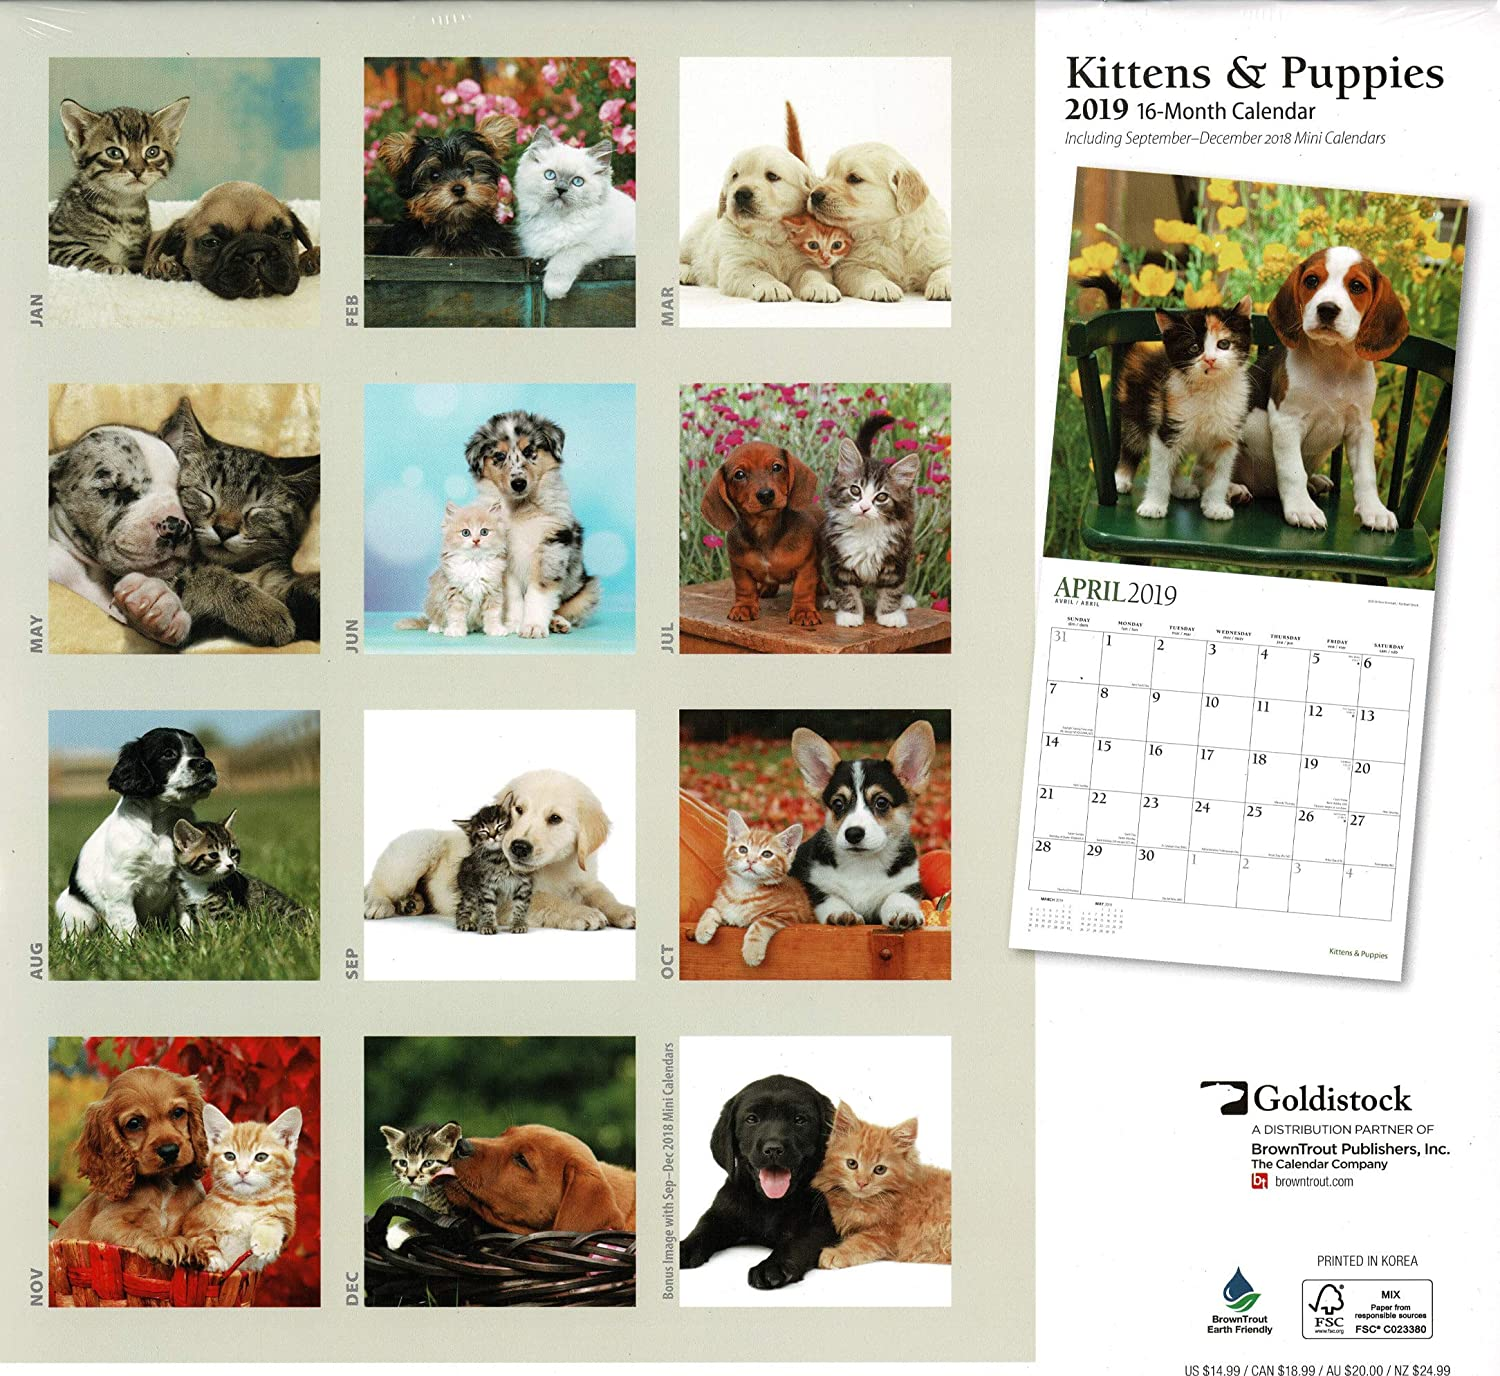 12 x 24 Goldistock -Kittens /& Puppies Eco-Friendly 2019 Large Wall Calendar - Thick /& Sturdy Paper Open Myth Debunked